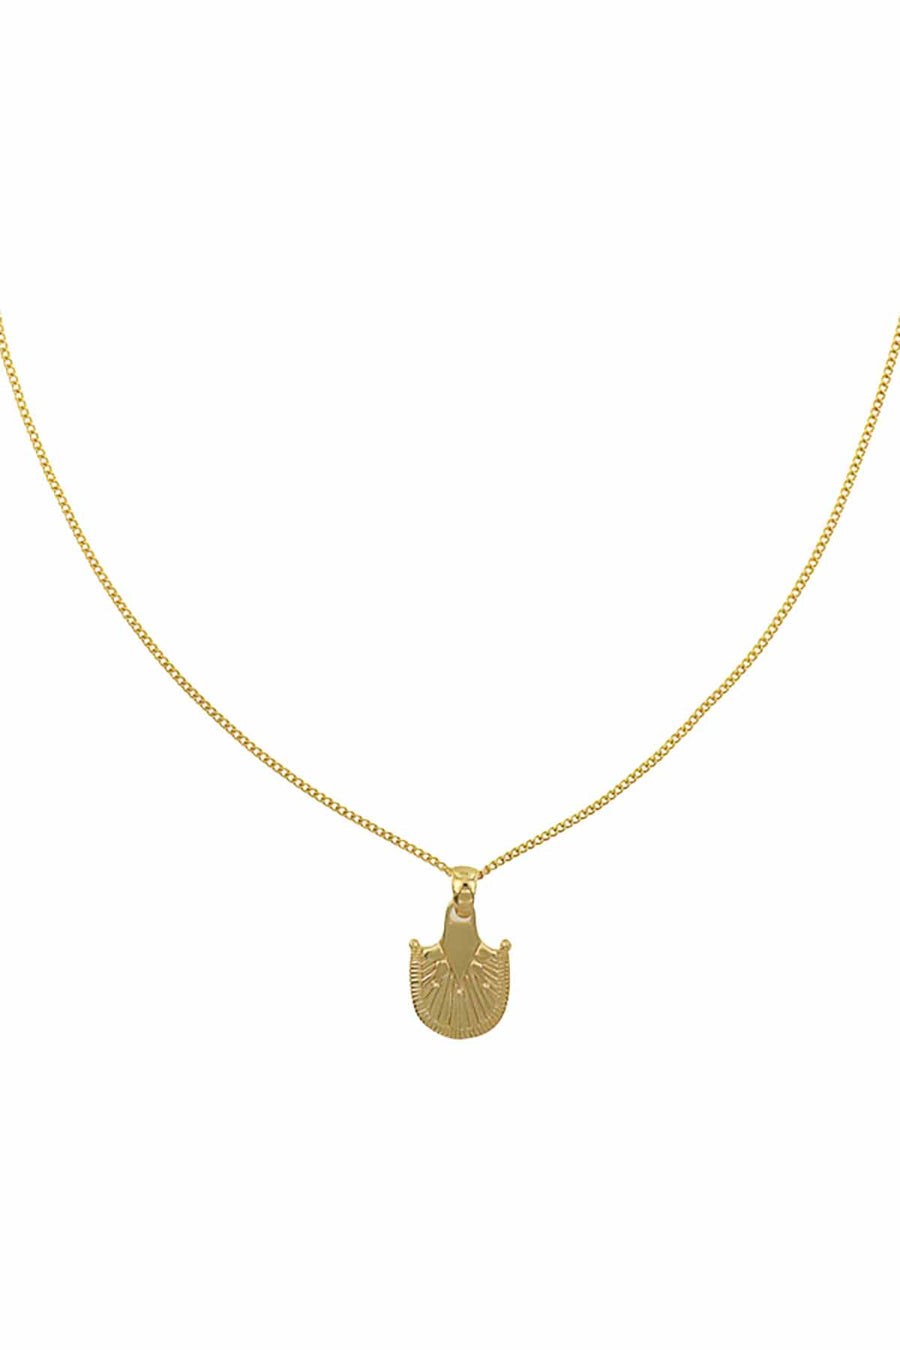 OASIS PALM NECKLACE GOLD